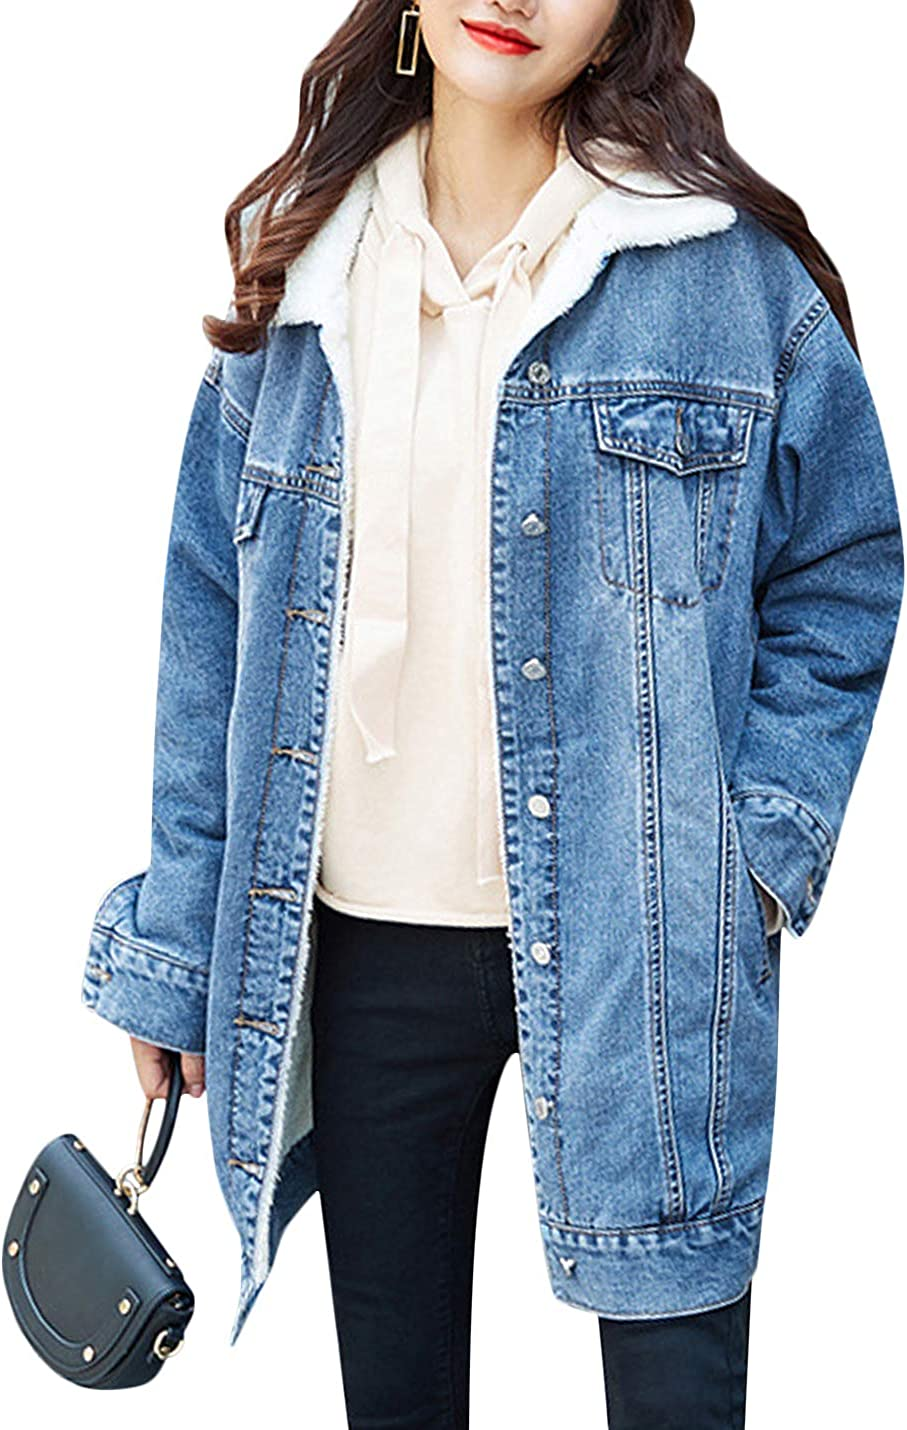 Uaneo Women's Winter Thicken Lapel Button Down Sherpa Lined Denim Jacket Coat (Blue, Large)